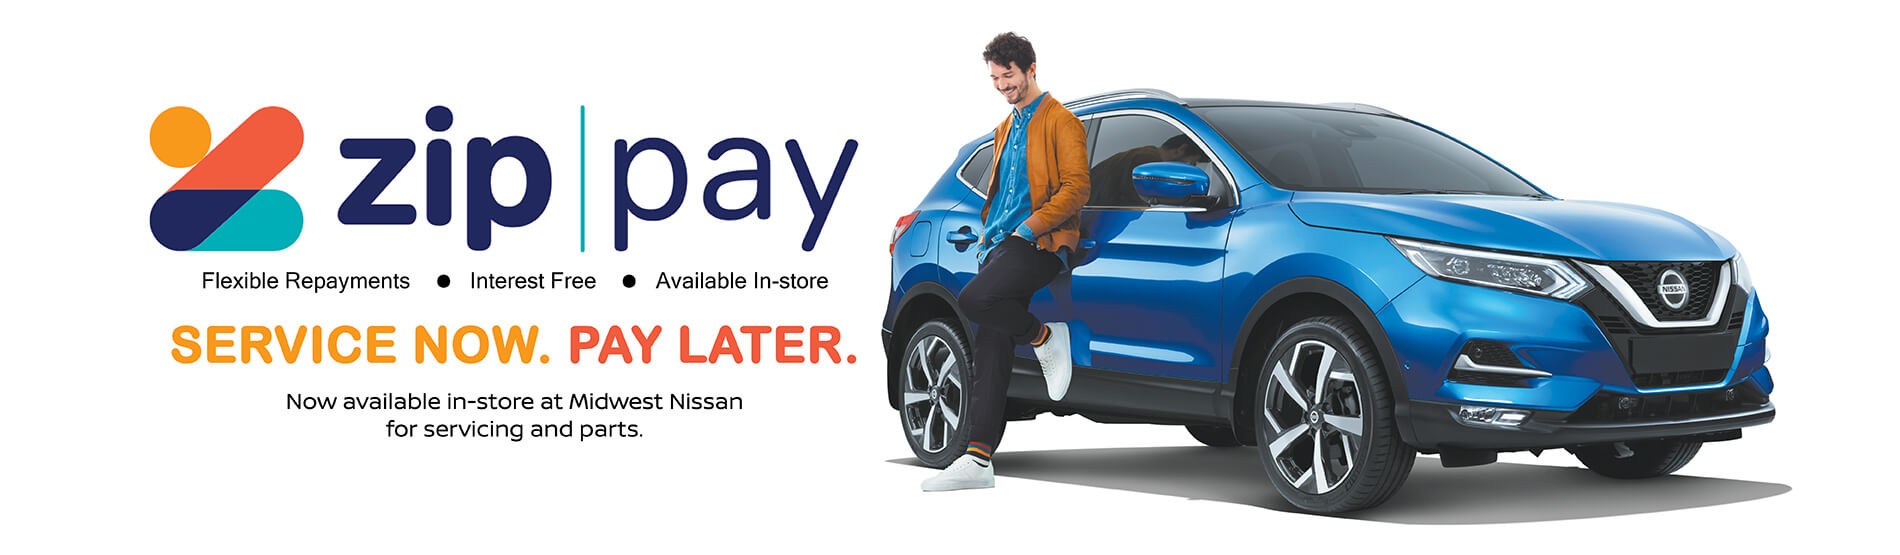 Midwest Nissan - Zip Pay